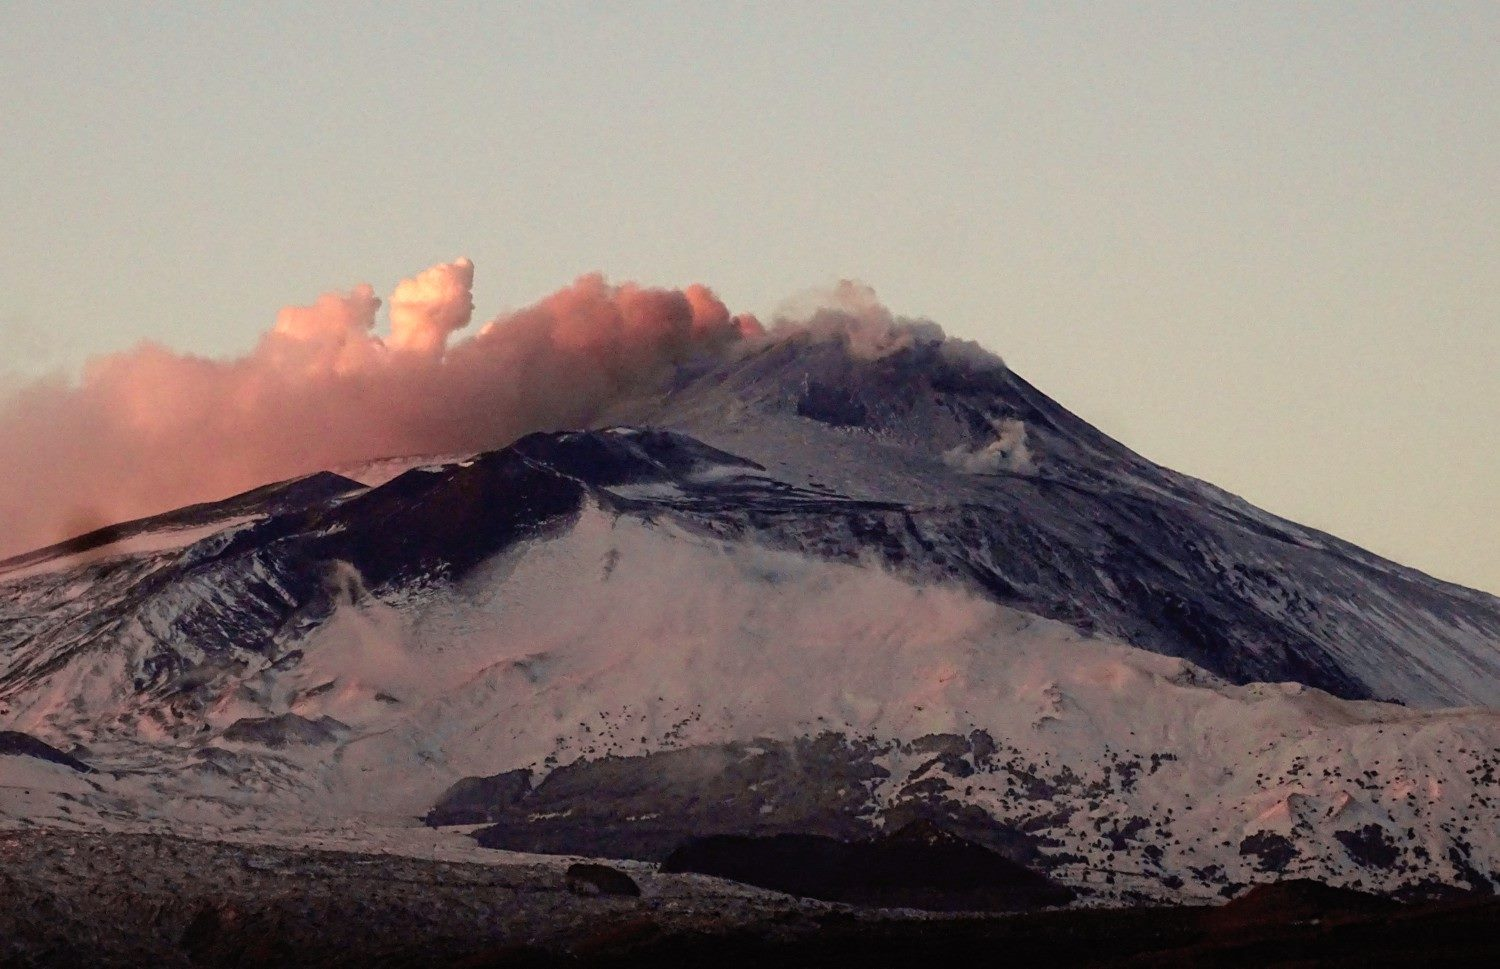 Ash emissions from Etna volcano yesterday (image: Boris Behncke / facebook)